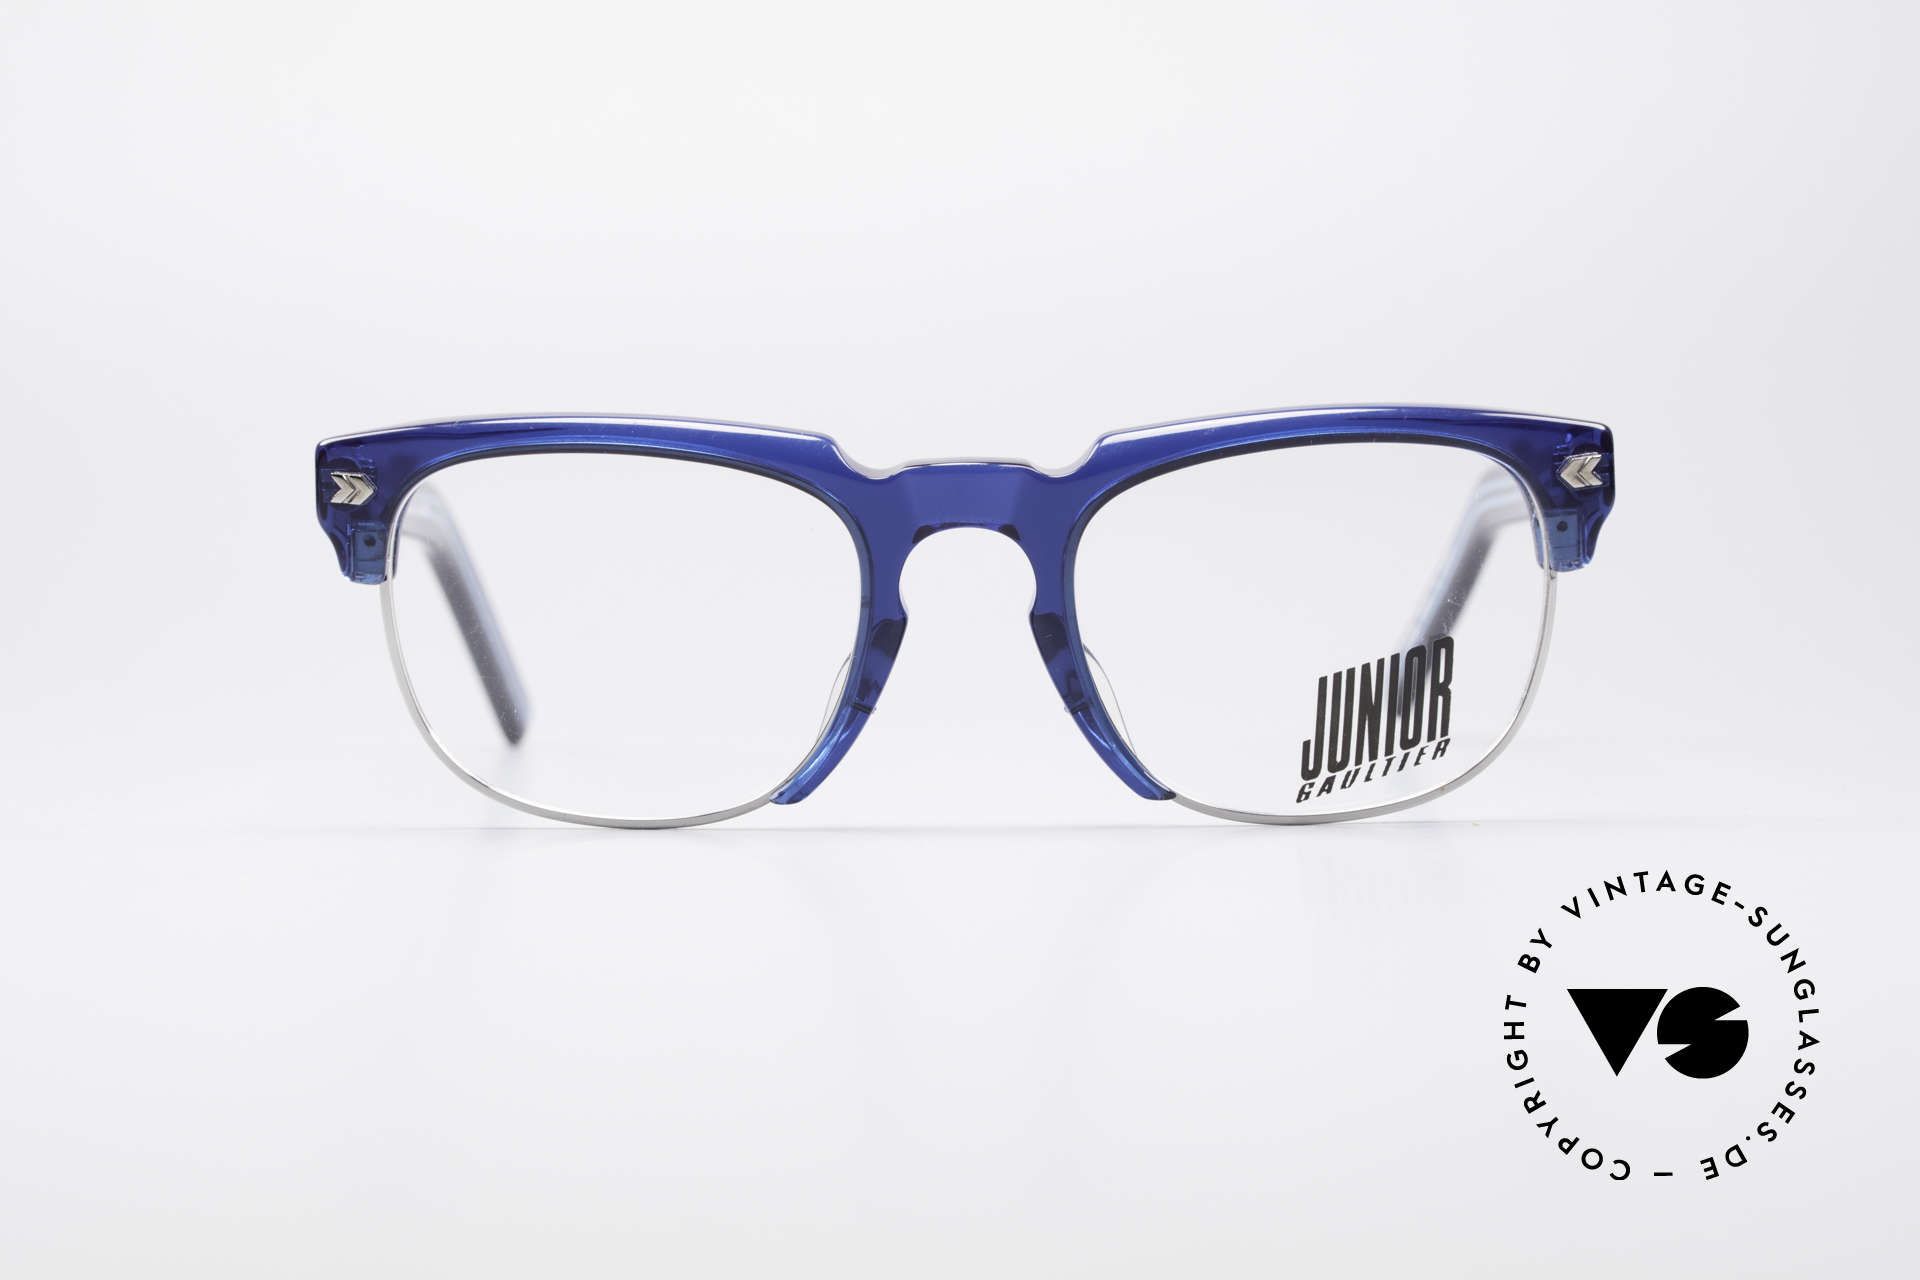 Jean Paul Gaultier 57-1271 90's Junior Collection, massive frame with conspicuous details (eye-catcher), Made for Men